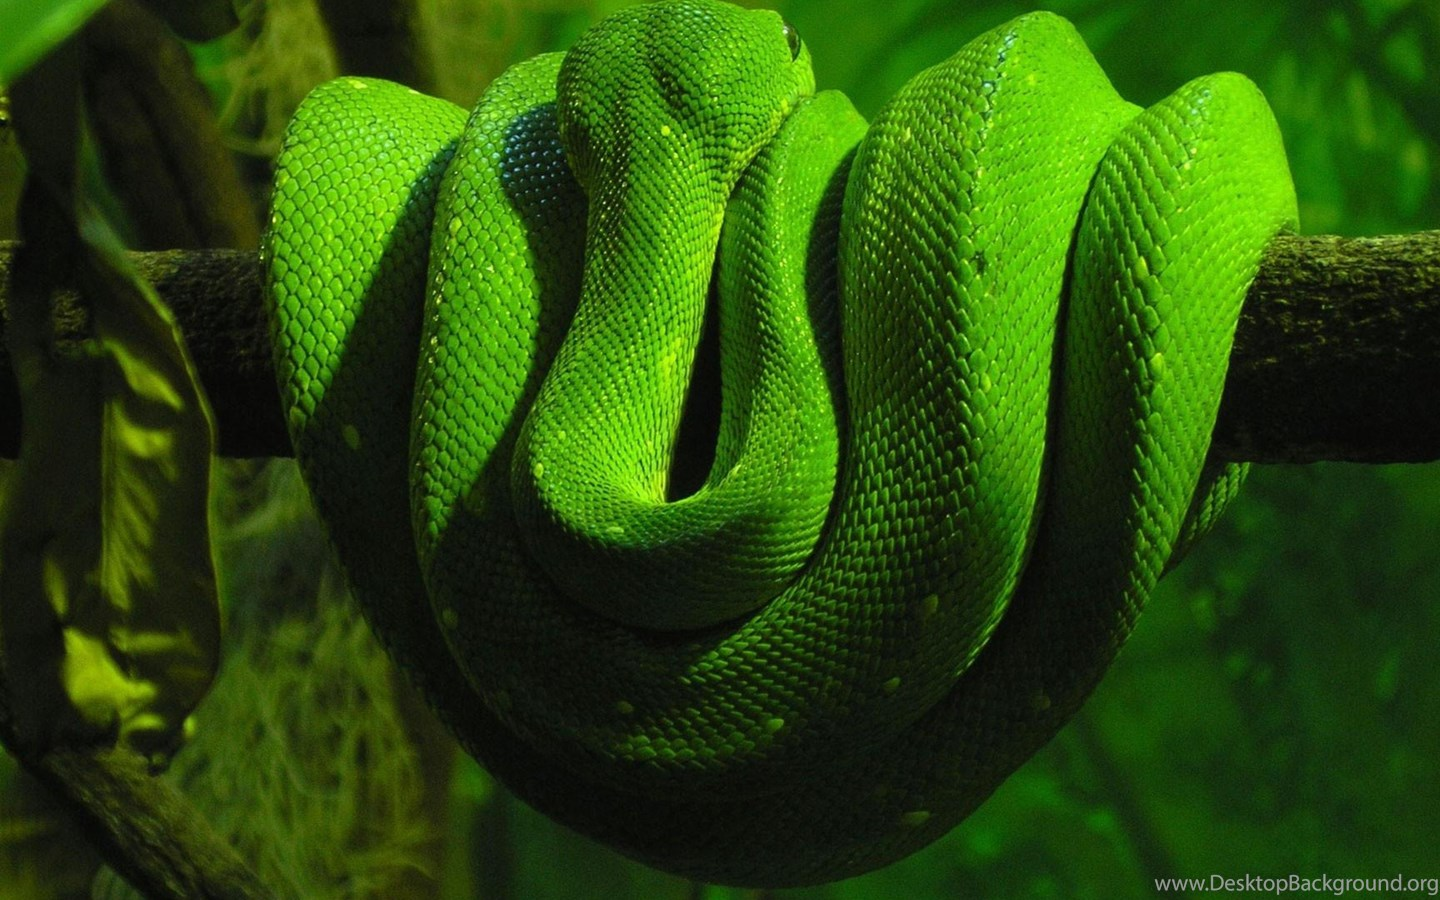 Animals green snake on a branch snake hd wallpapers - Green snake hd wallpaper ...